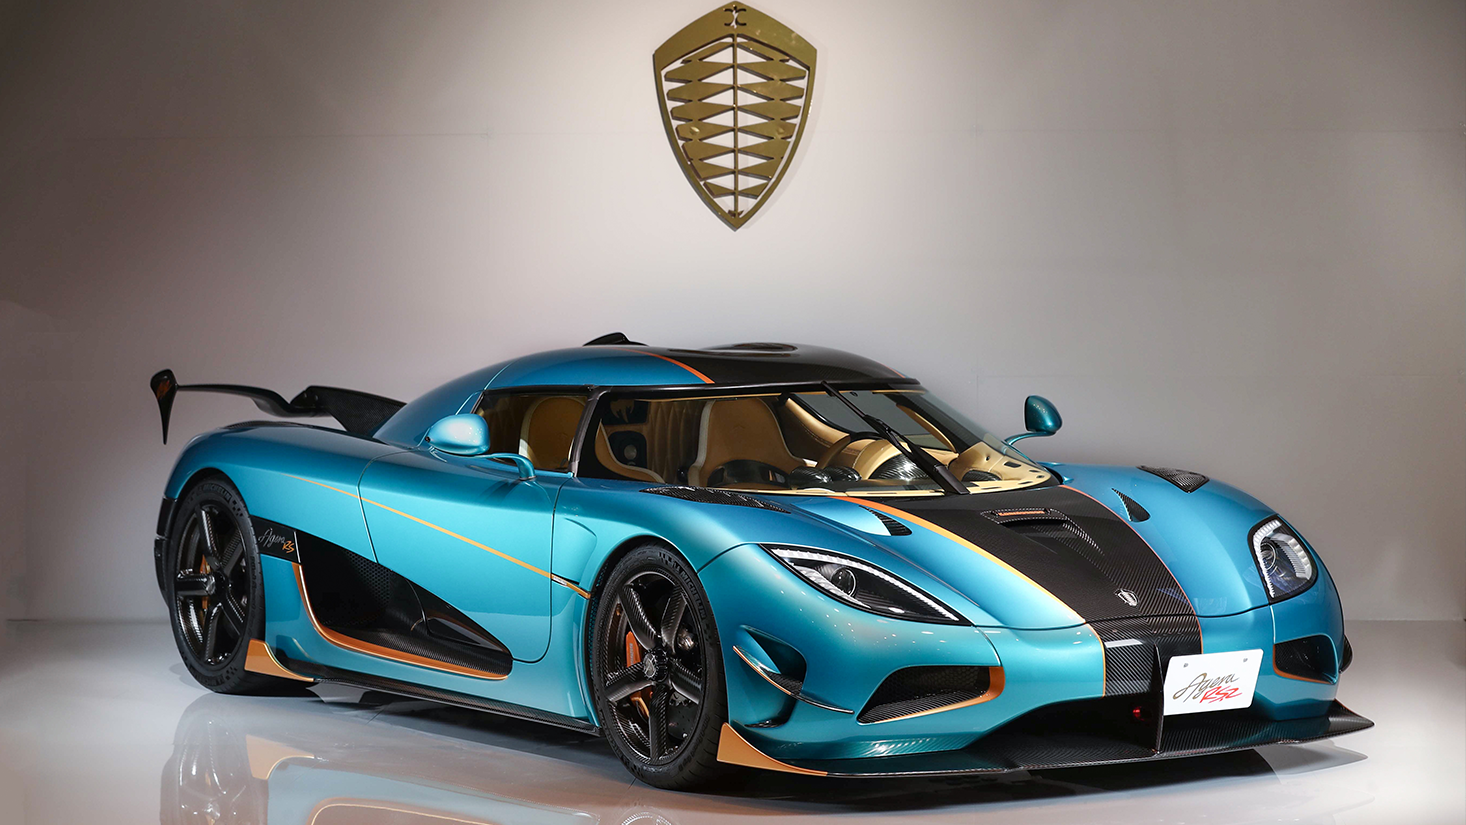 1-of-3 Koenigsegg Agera RSR is Just for the Japanese